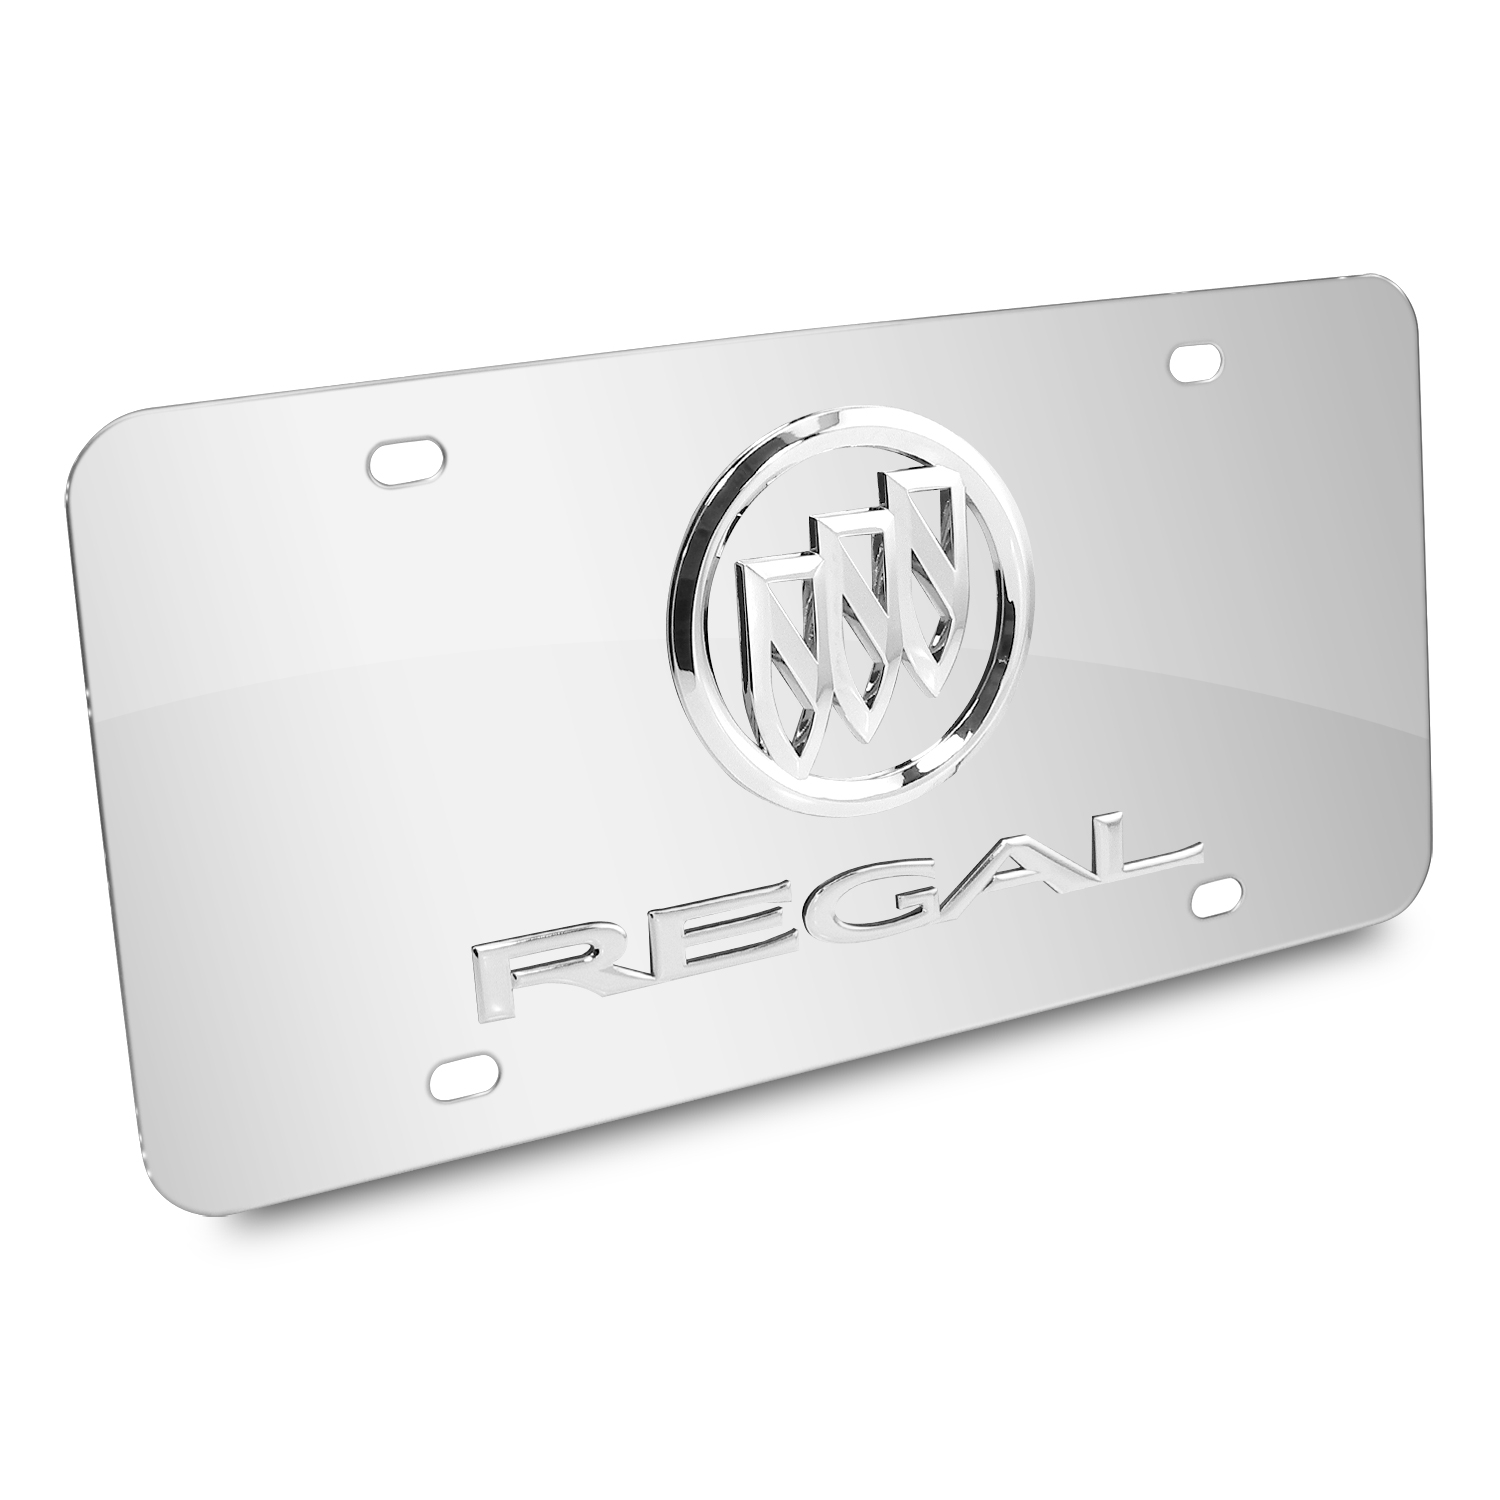 Buick Regal 3D Logo Chrome Stainless Steel License Plate